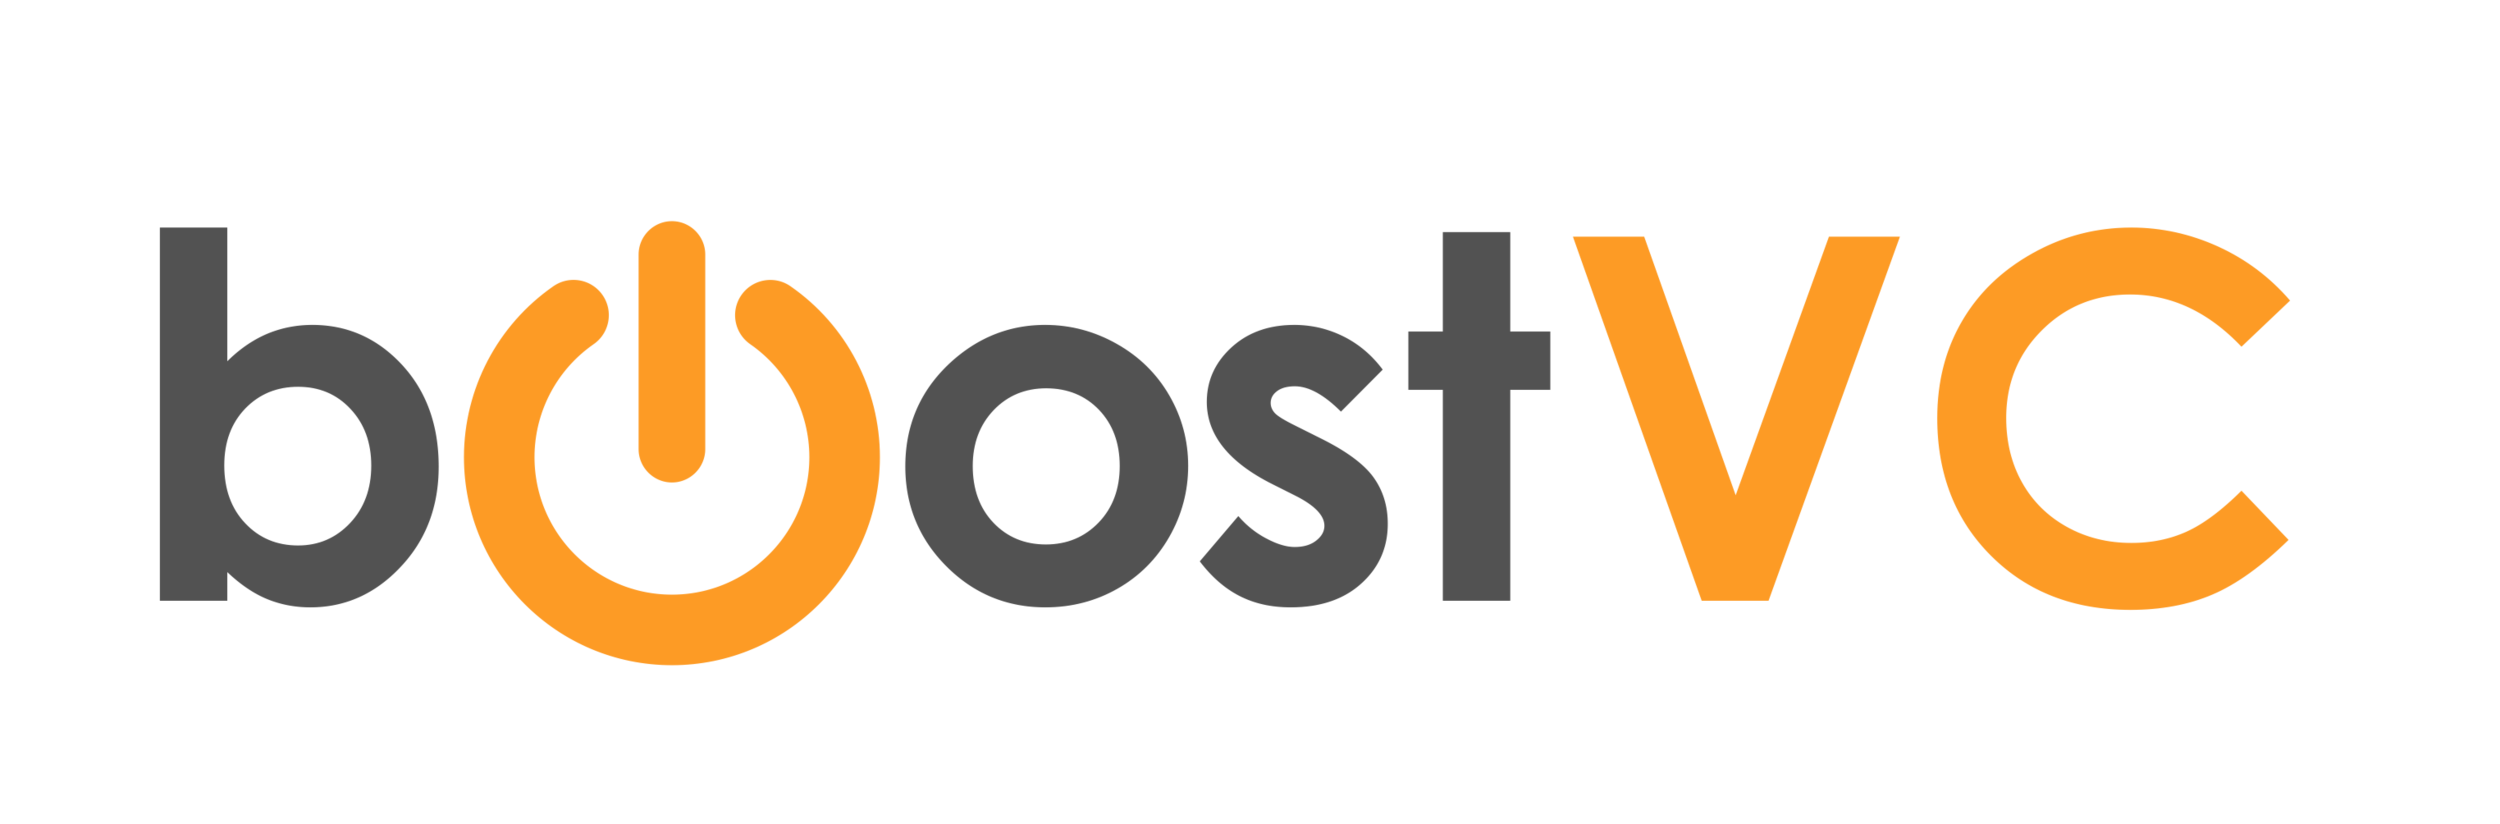 boost-vc-logo.png